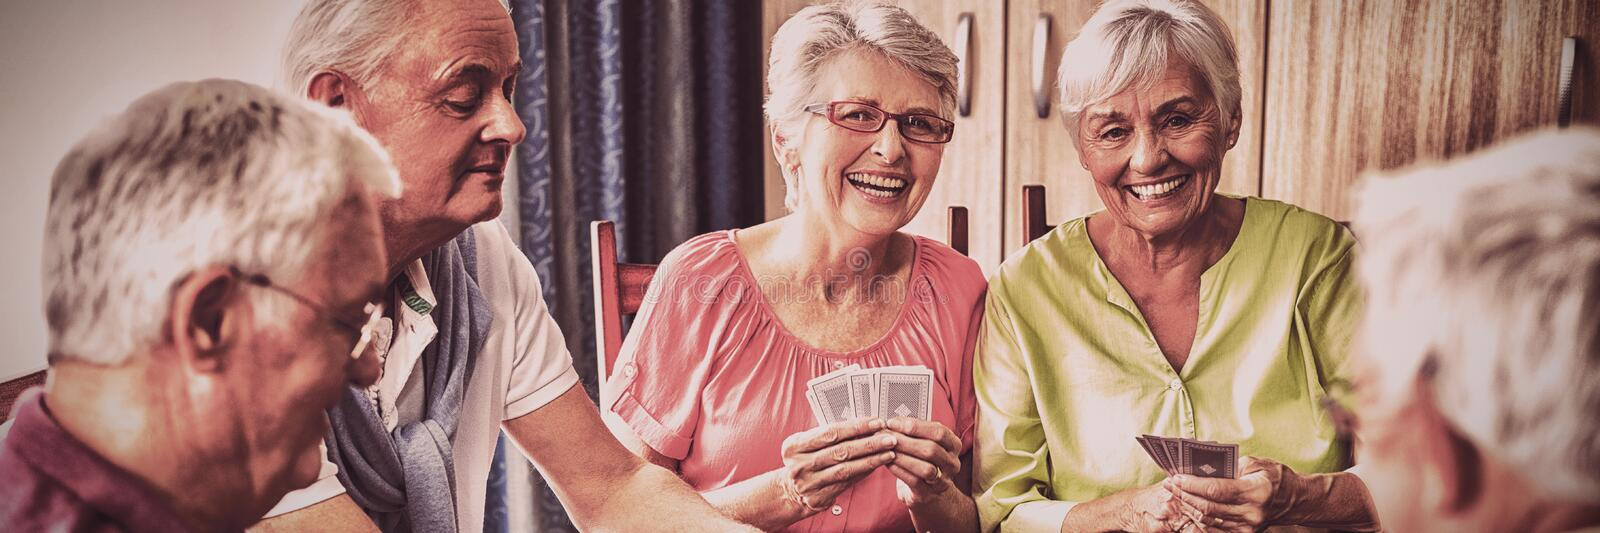 Seniors playing cards together stock image